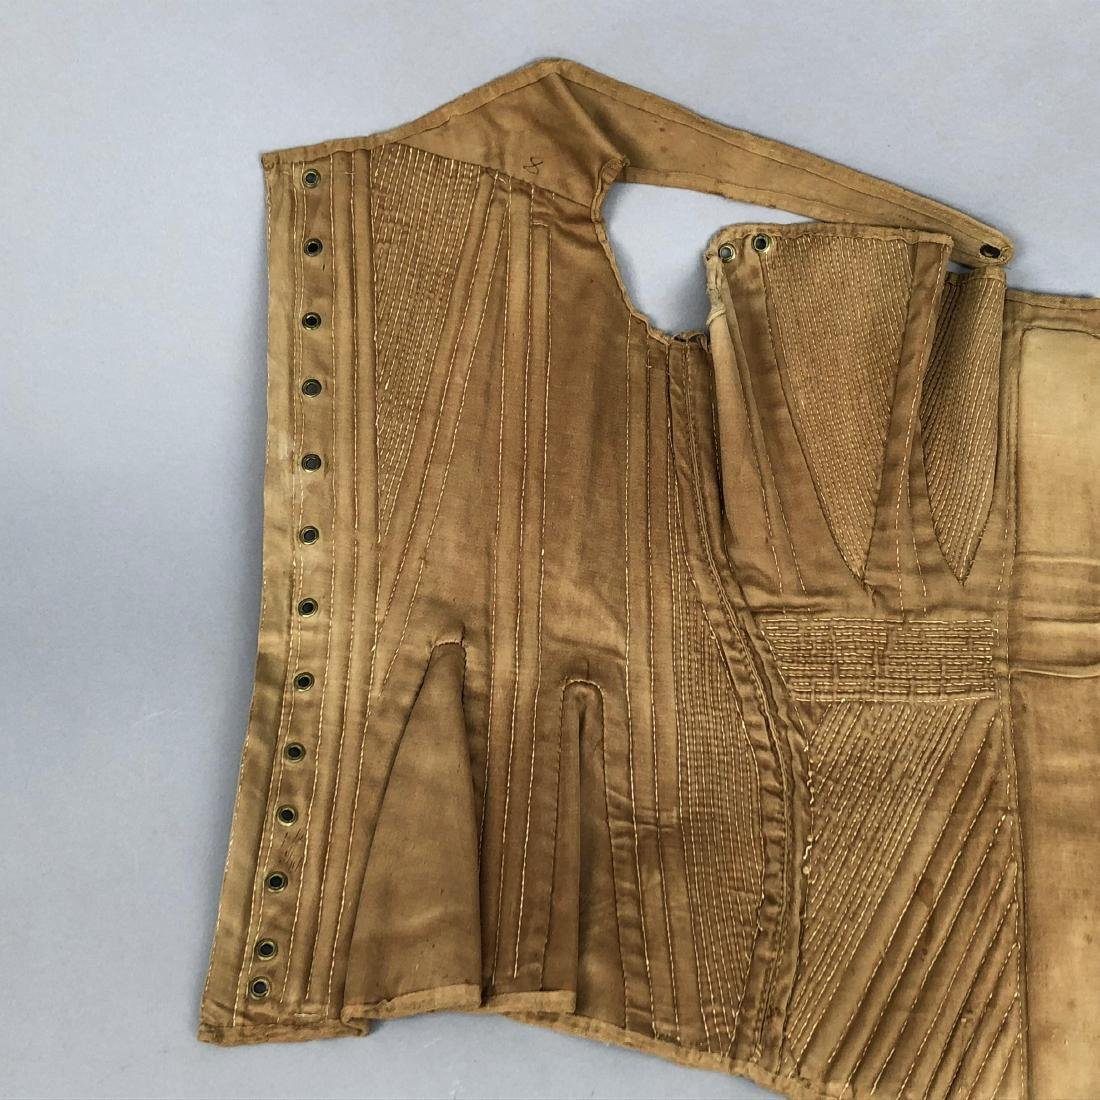 BROWN COTTON SATEEN CORSET, c. 1835 - 7